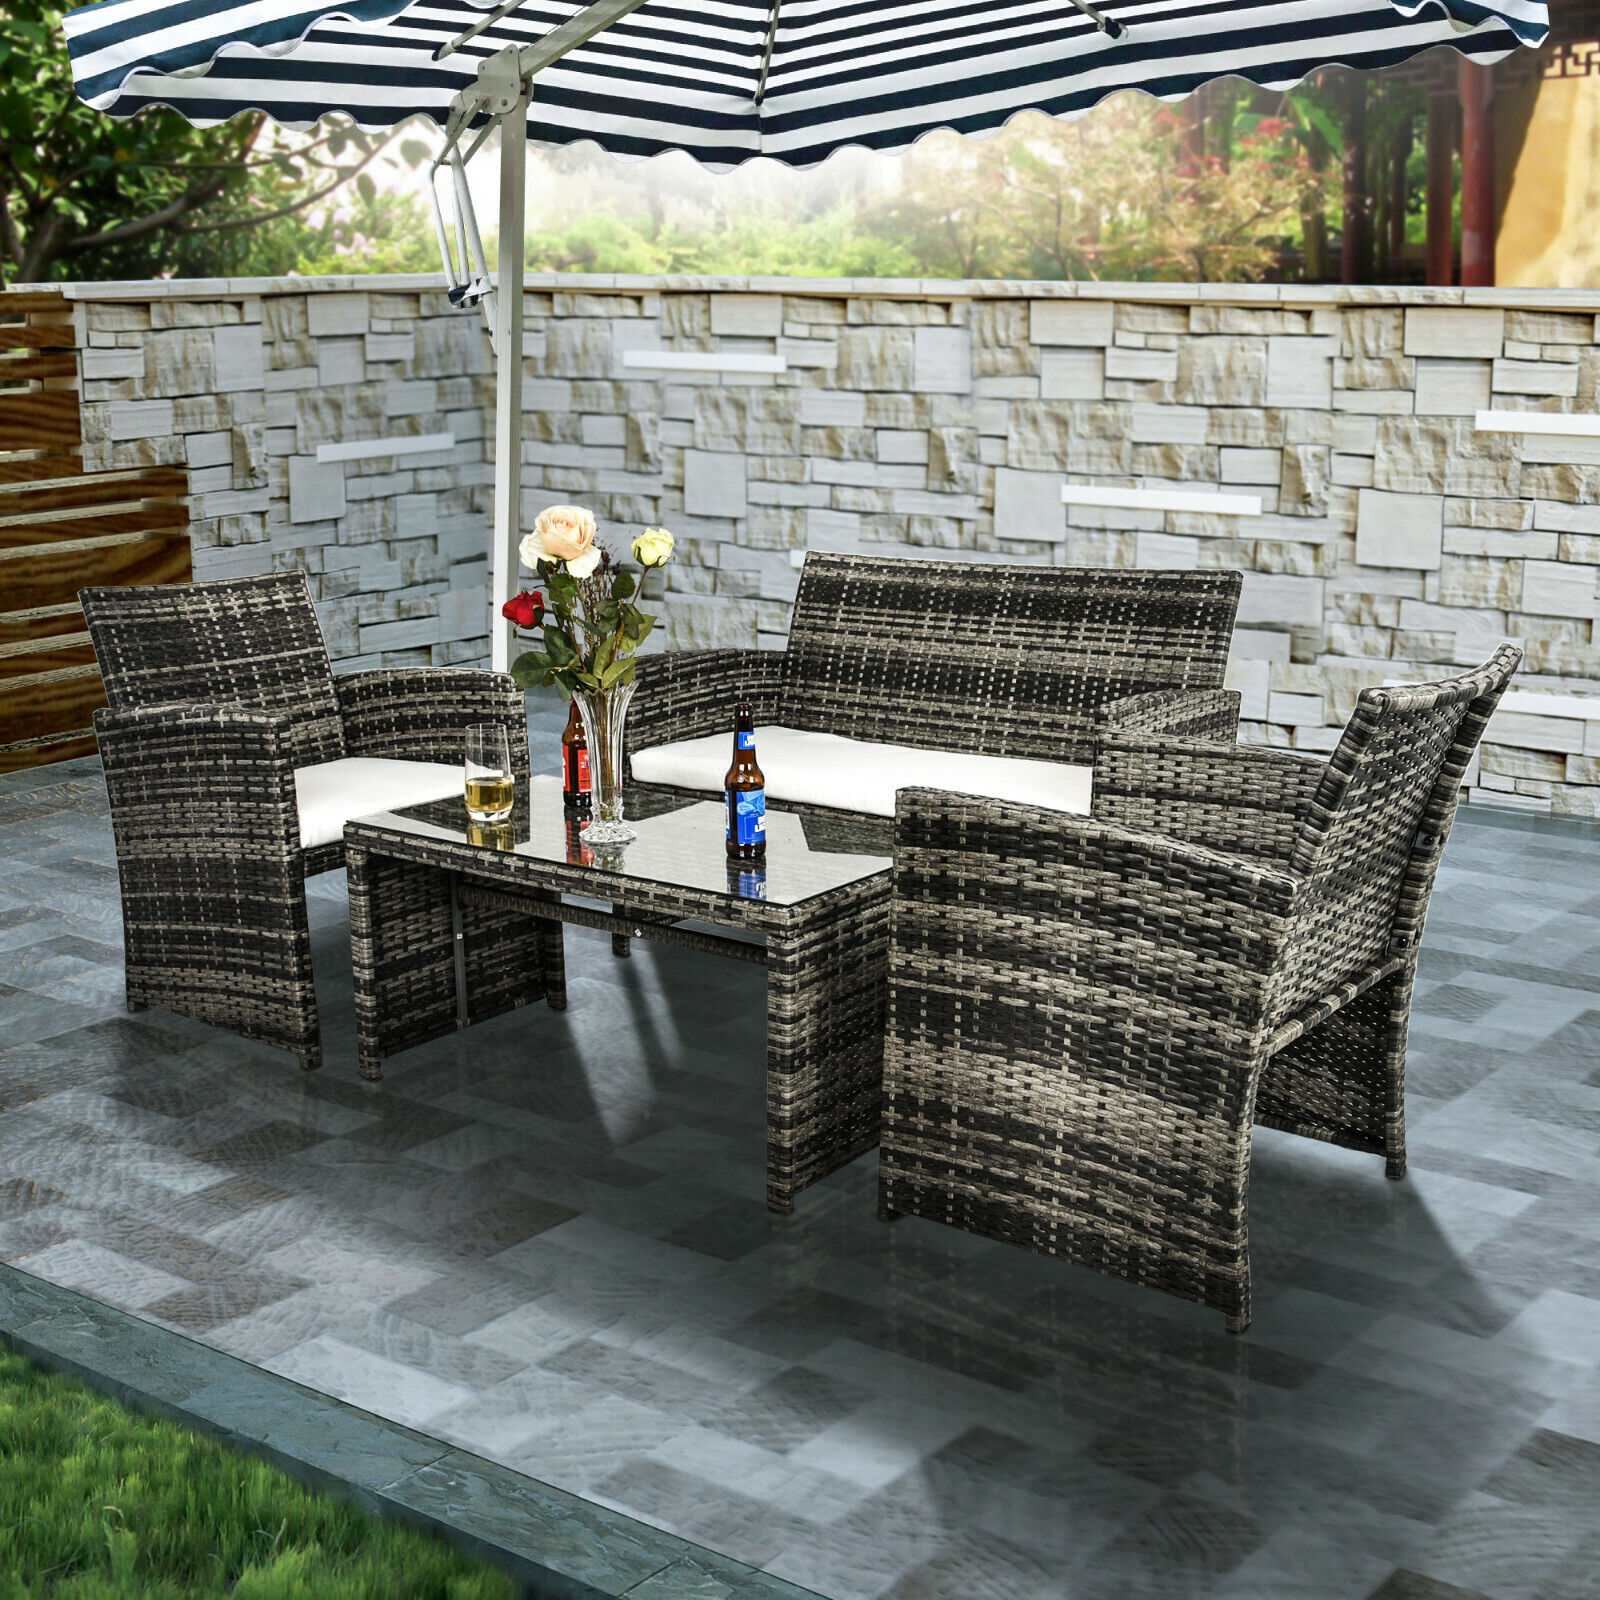 4 Piece White Wicker Patio Furniture Set Green Fabric Cushions Outdoor Seating For Sale Online Ebay